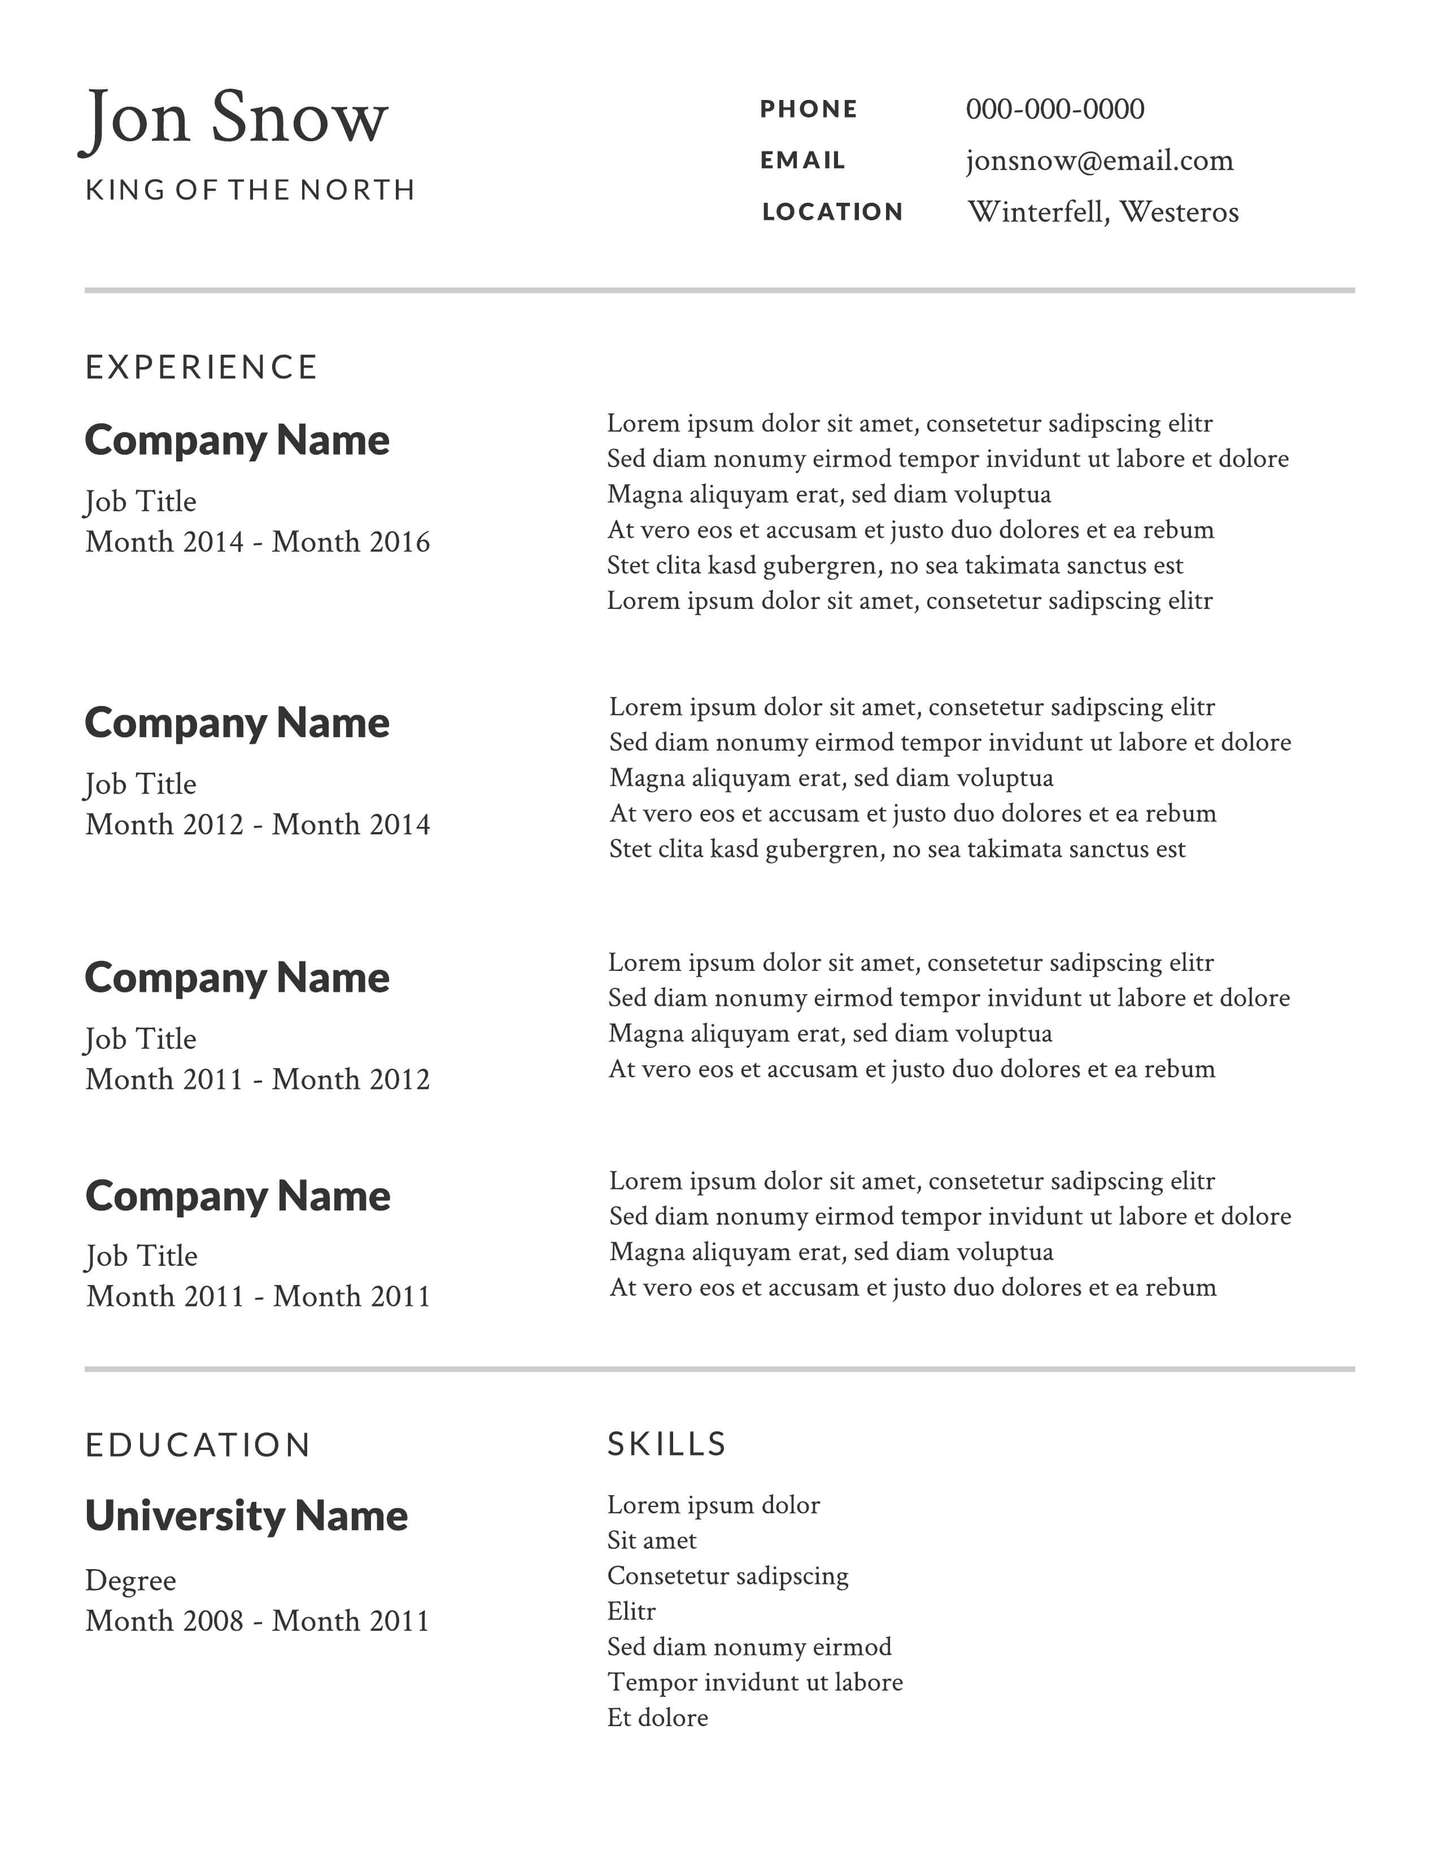 free professional resume templates downloadable lucidpress with photograph 2x latex Resume Free Resume Templates With Photograph